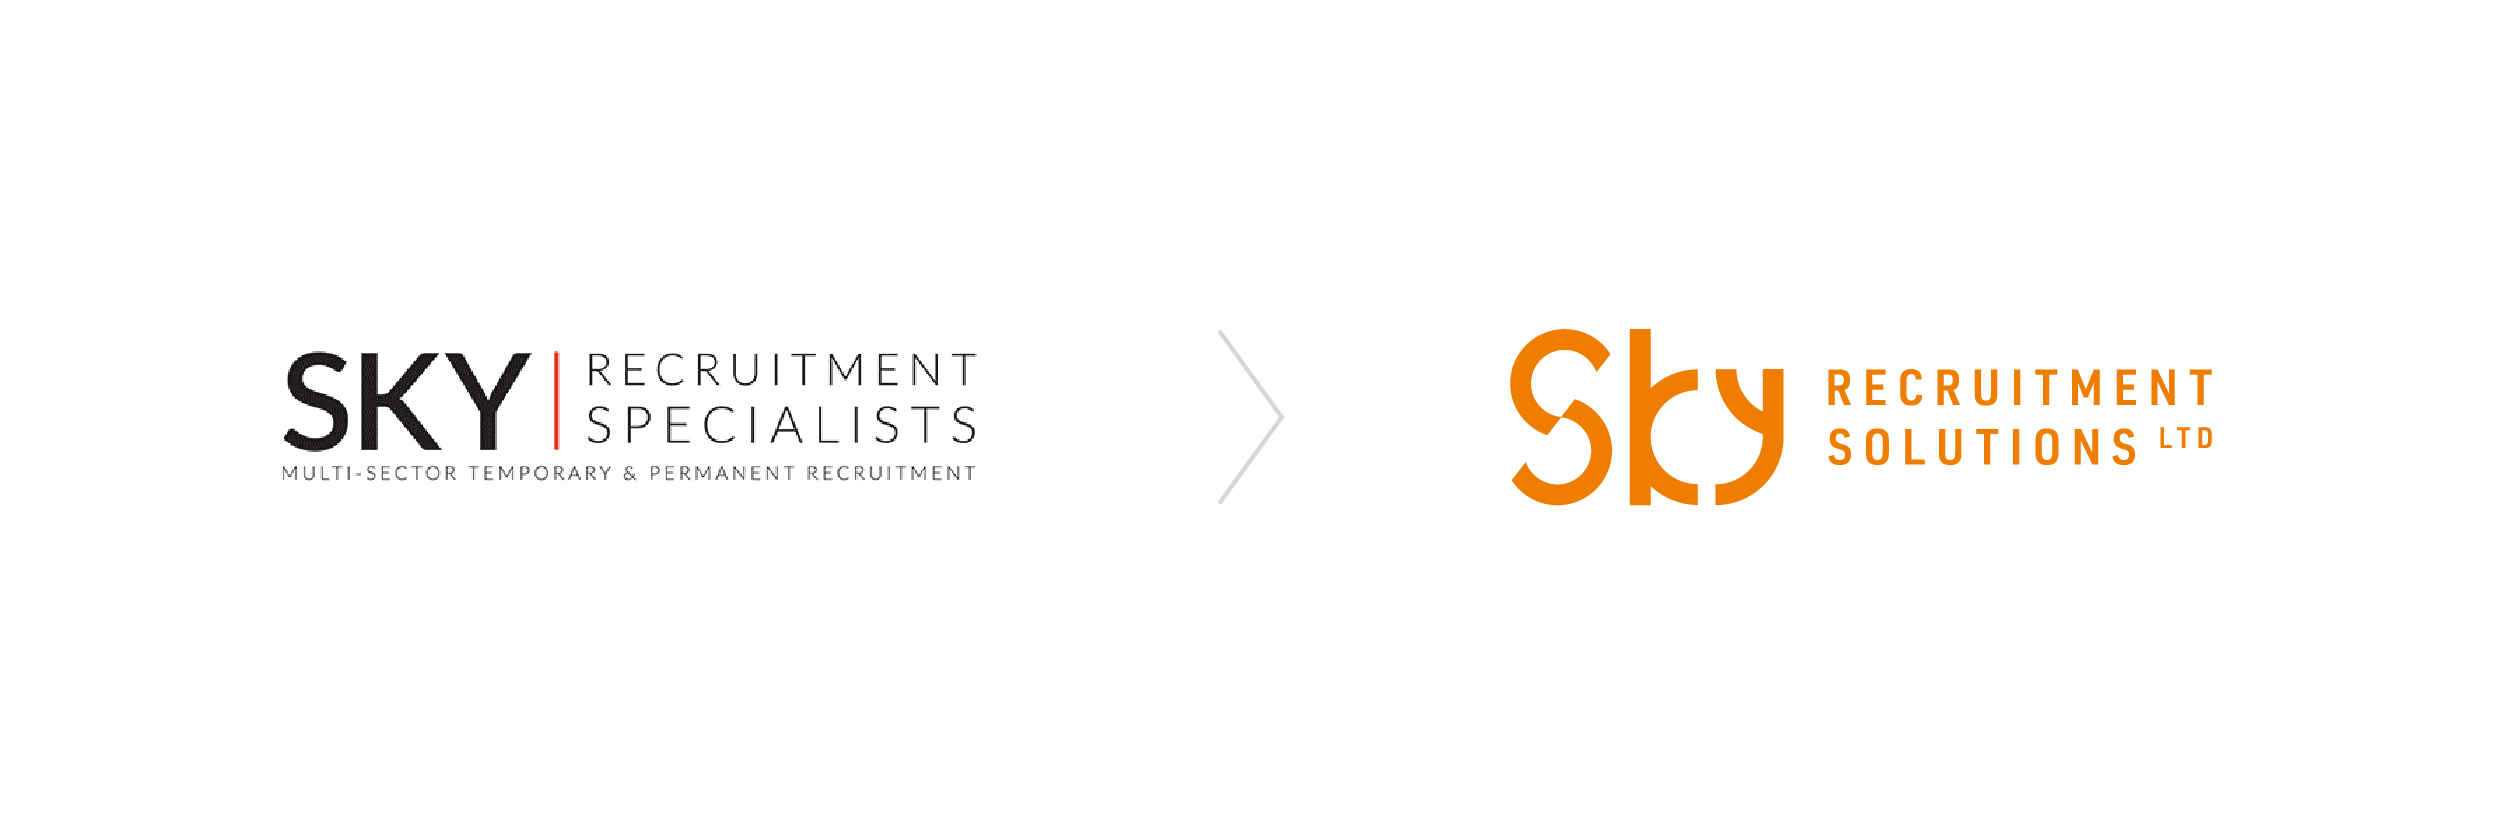 Sky Recruitment Solutions logo before and after